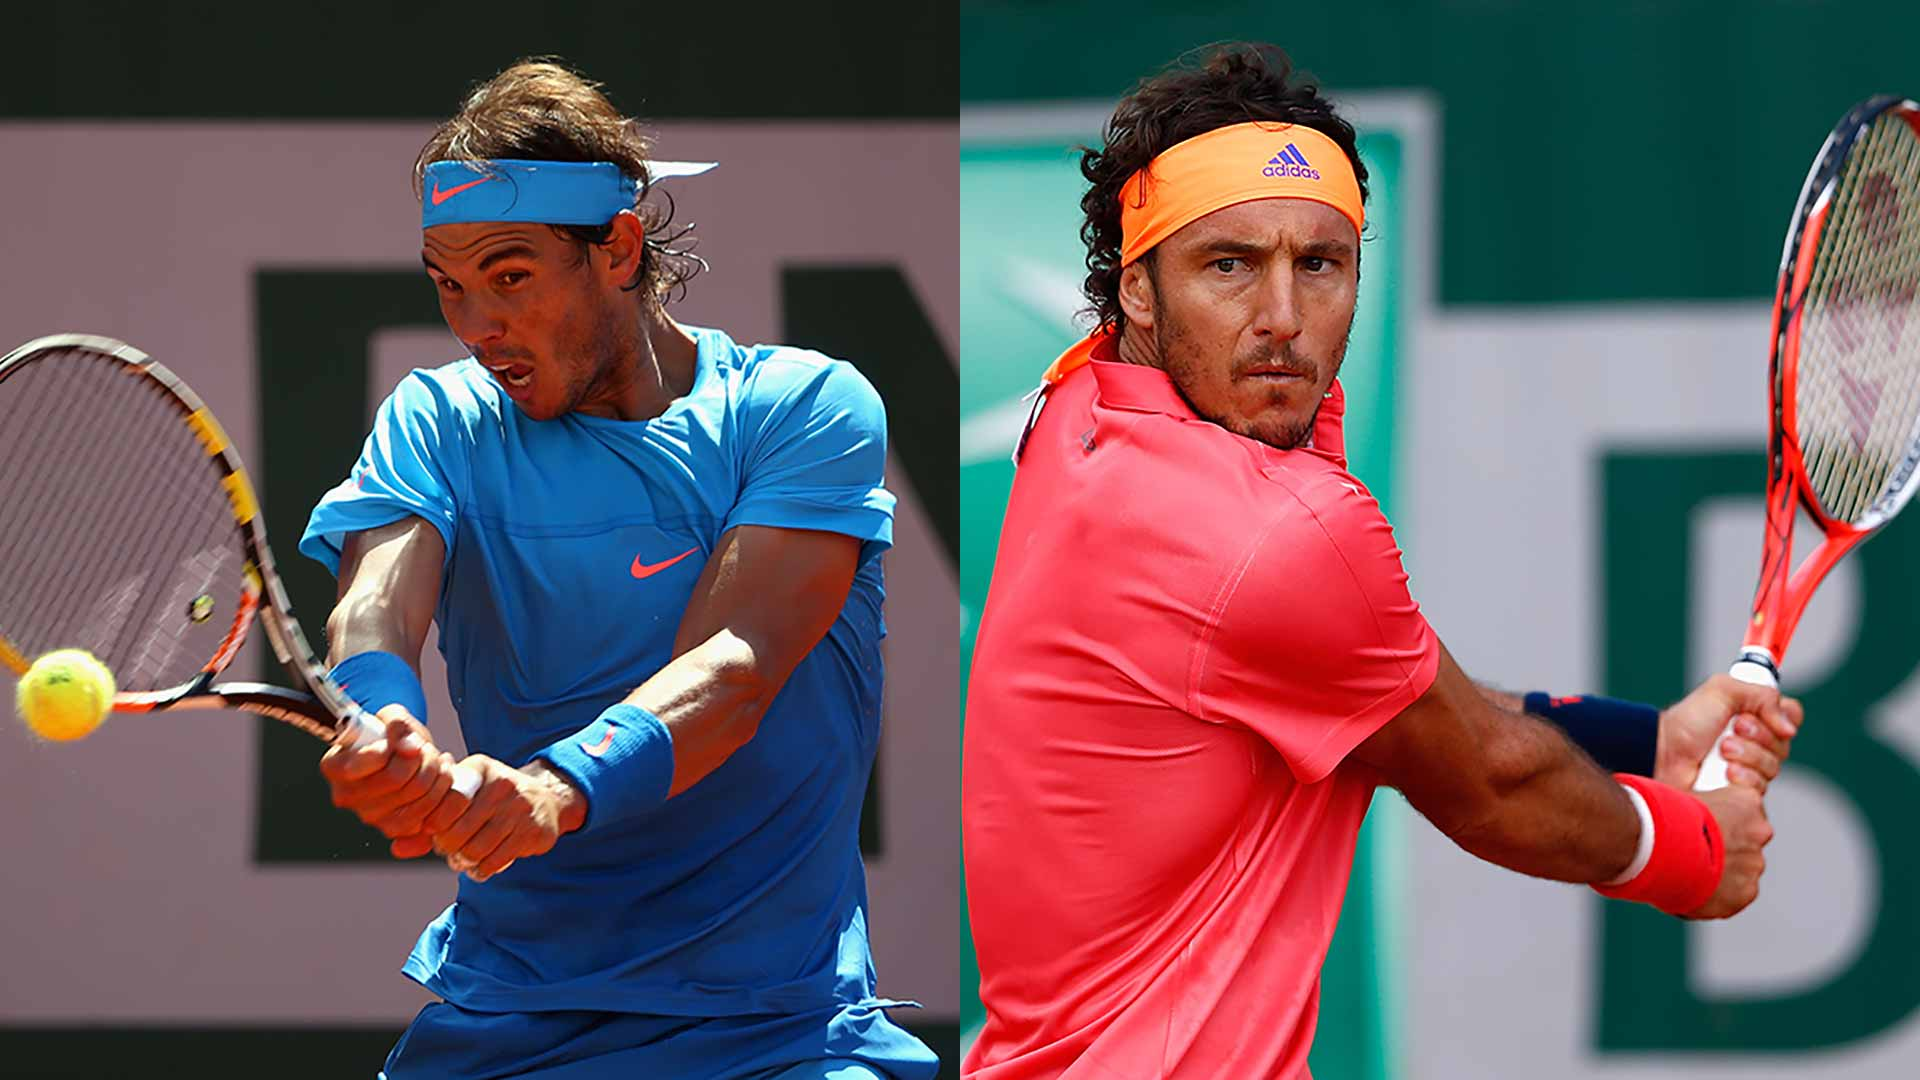 Nadal and Monaco take aim